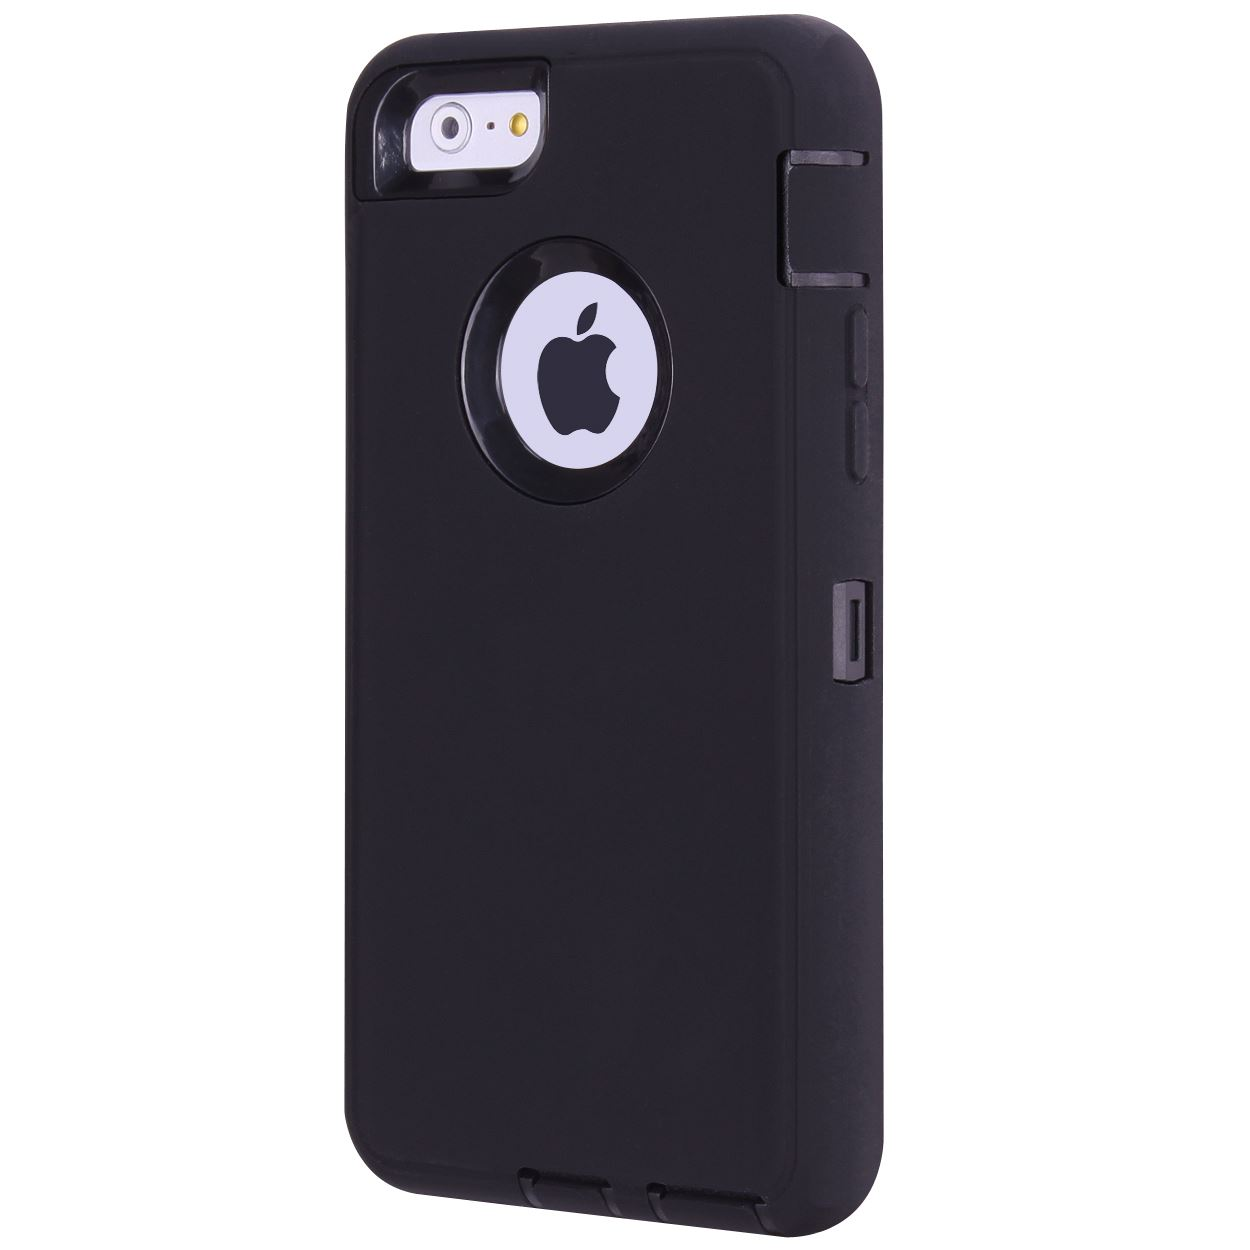 Heavy Duty Defender High Impact Dirt/Shockproof Armor Case Cover for iPhone 6